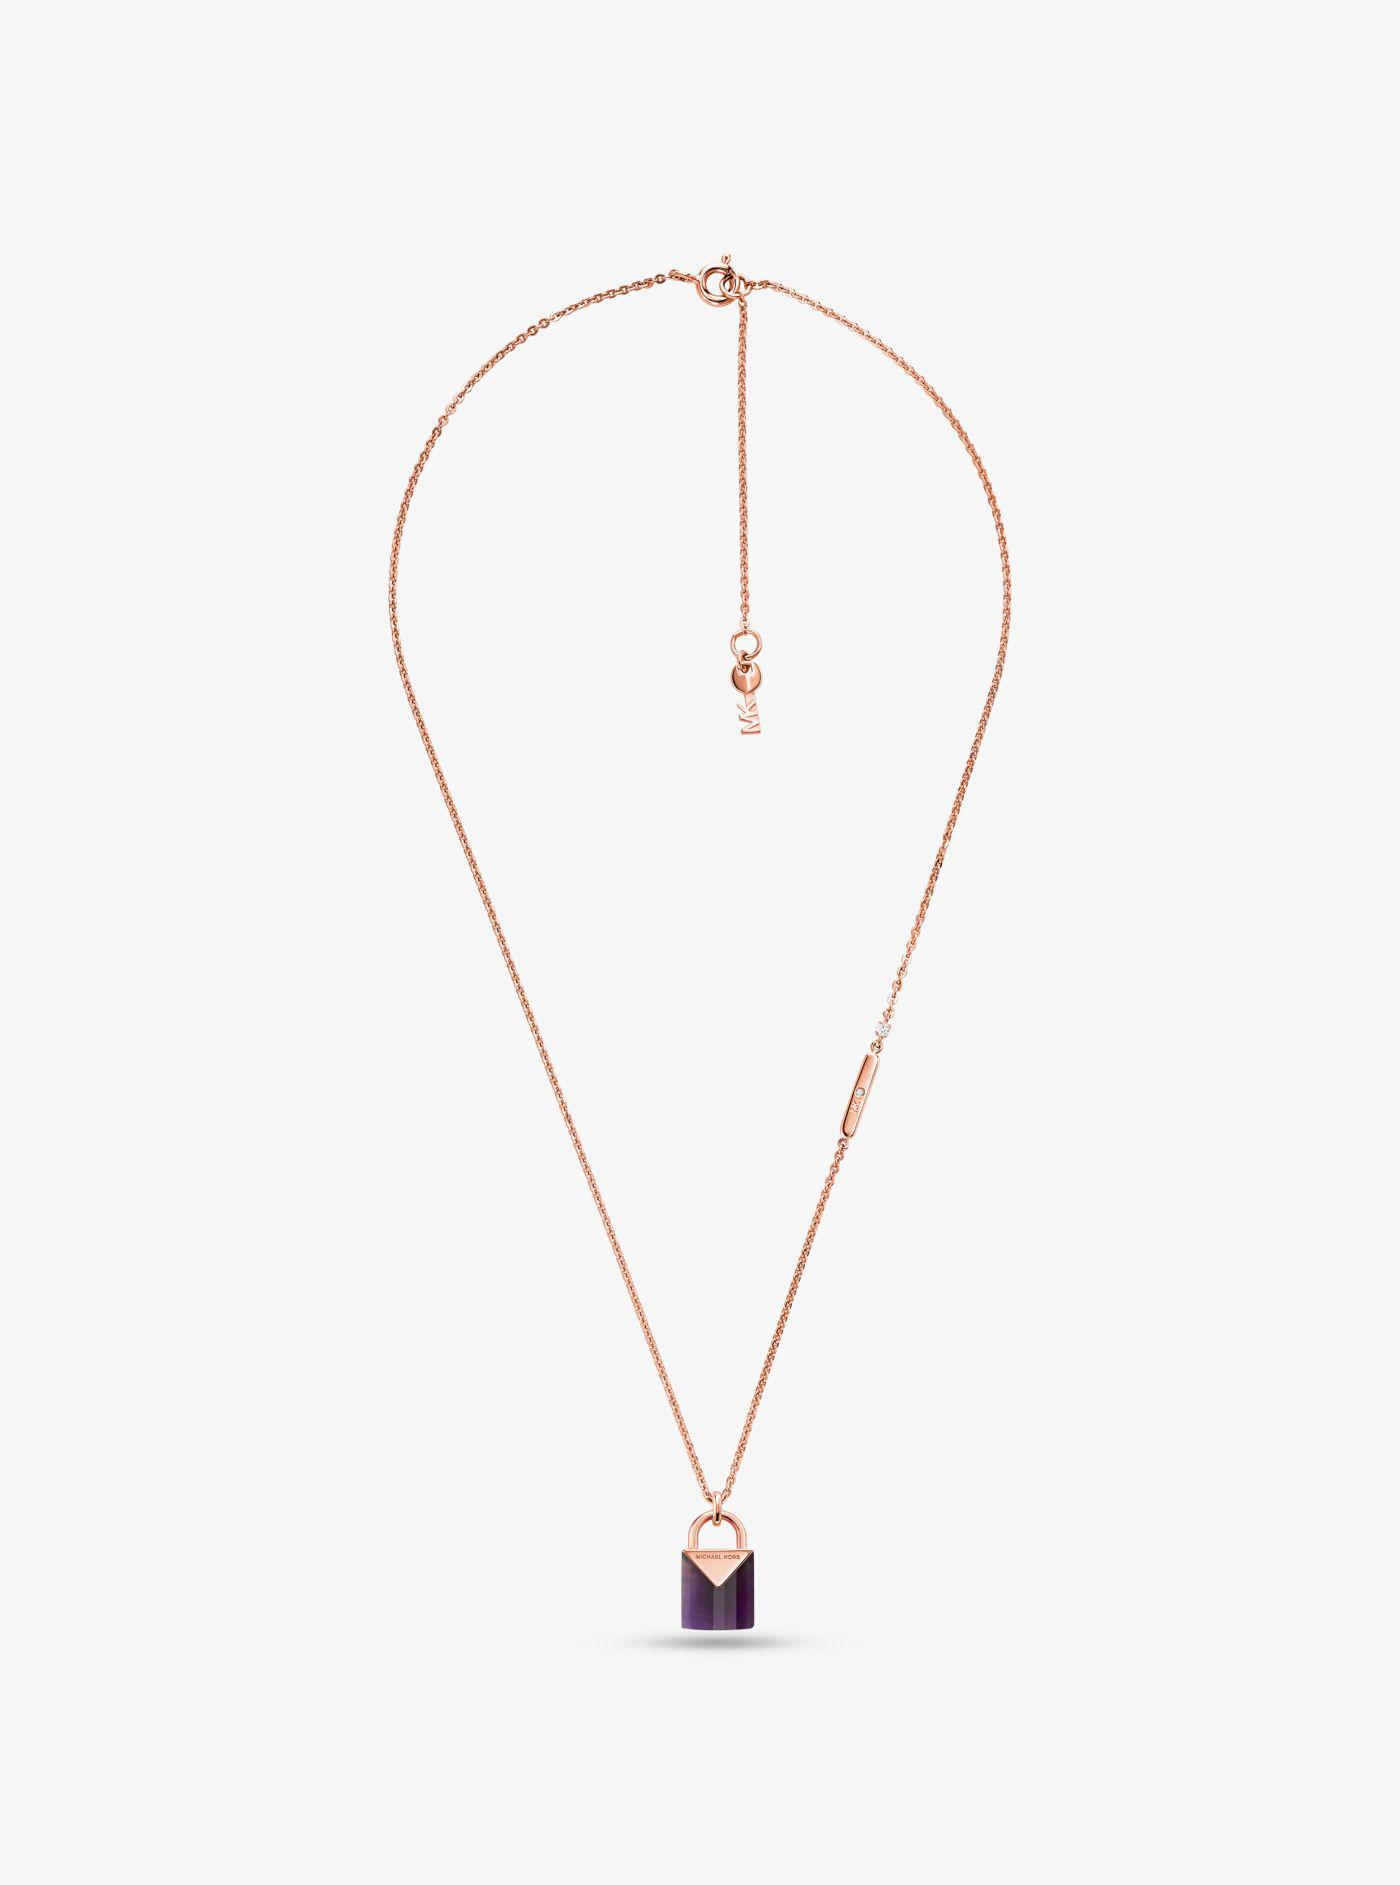 e549f68a80741 Lyst - Michael Kors 14k Rose Gold-plated Sterling Silver Lock ...